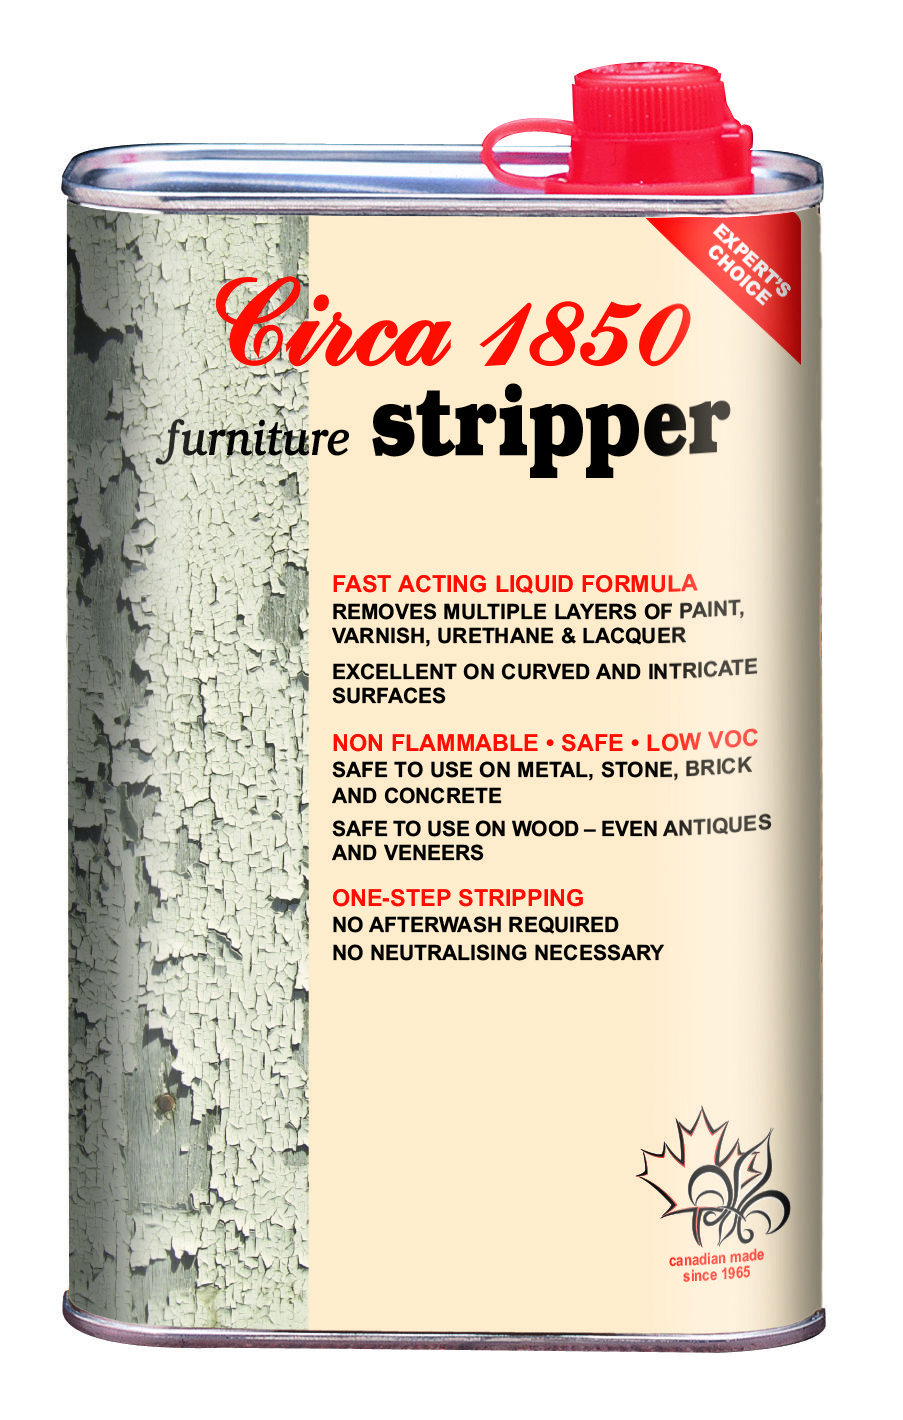 Circa 1850 Furniture Stripper removes old paint  varnish  shellac  lacquer  and urethane. Circa 1850 Furniture Stripper removes old paint  varnish  shellac